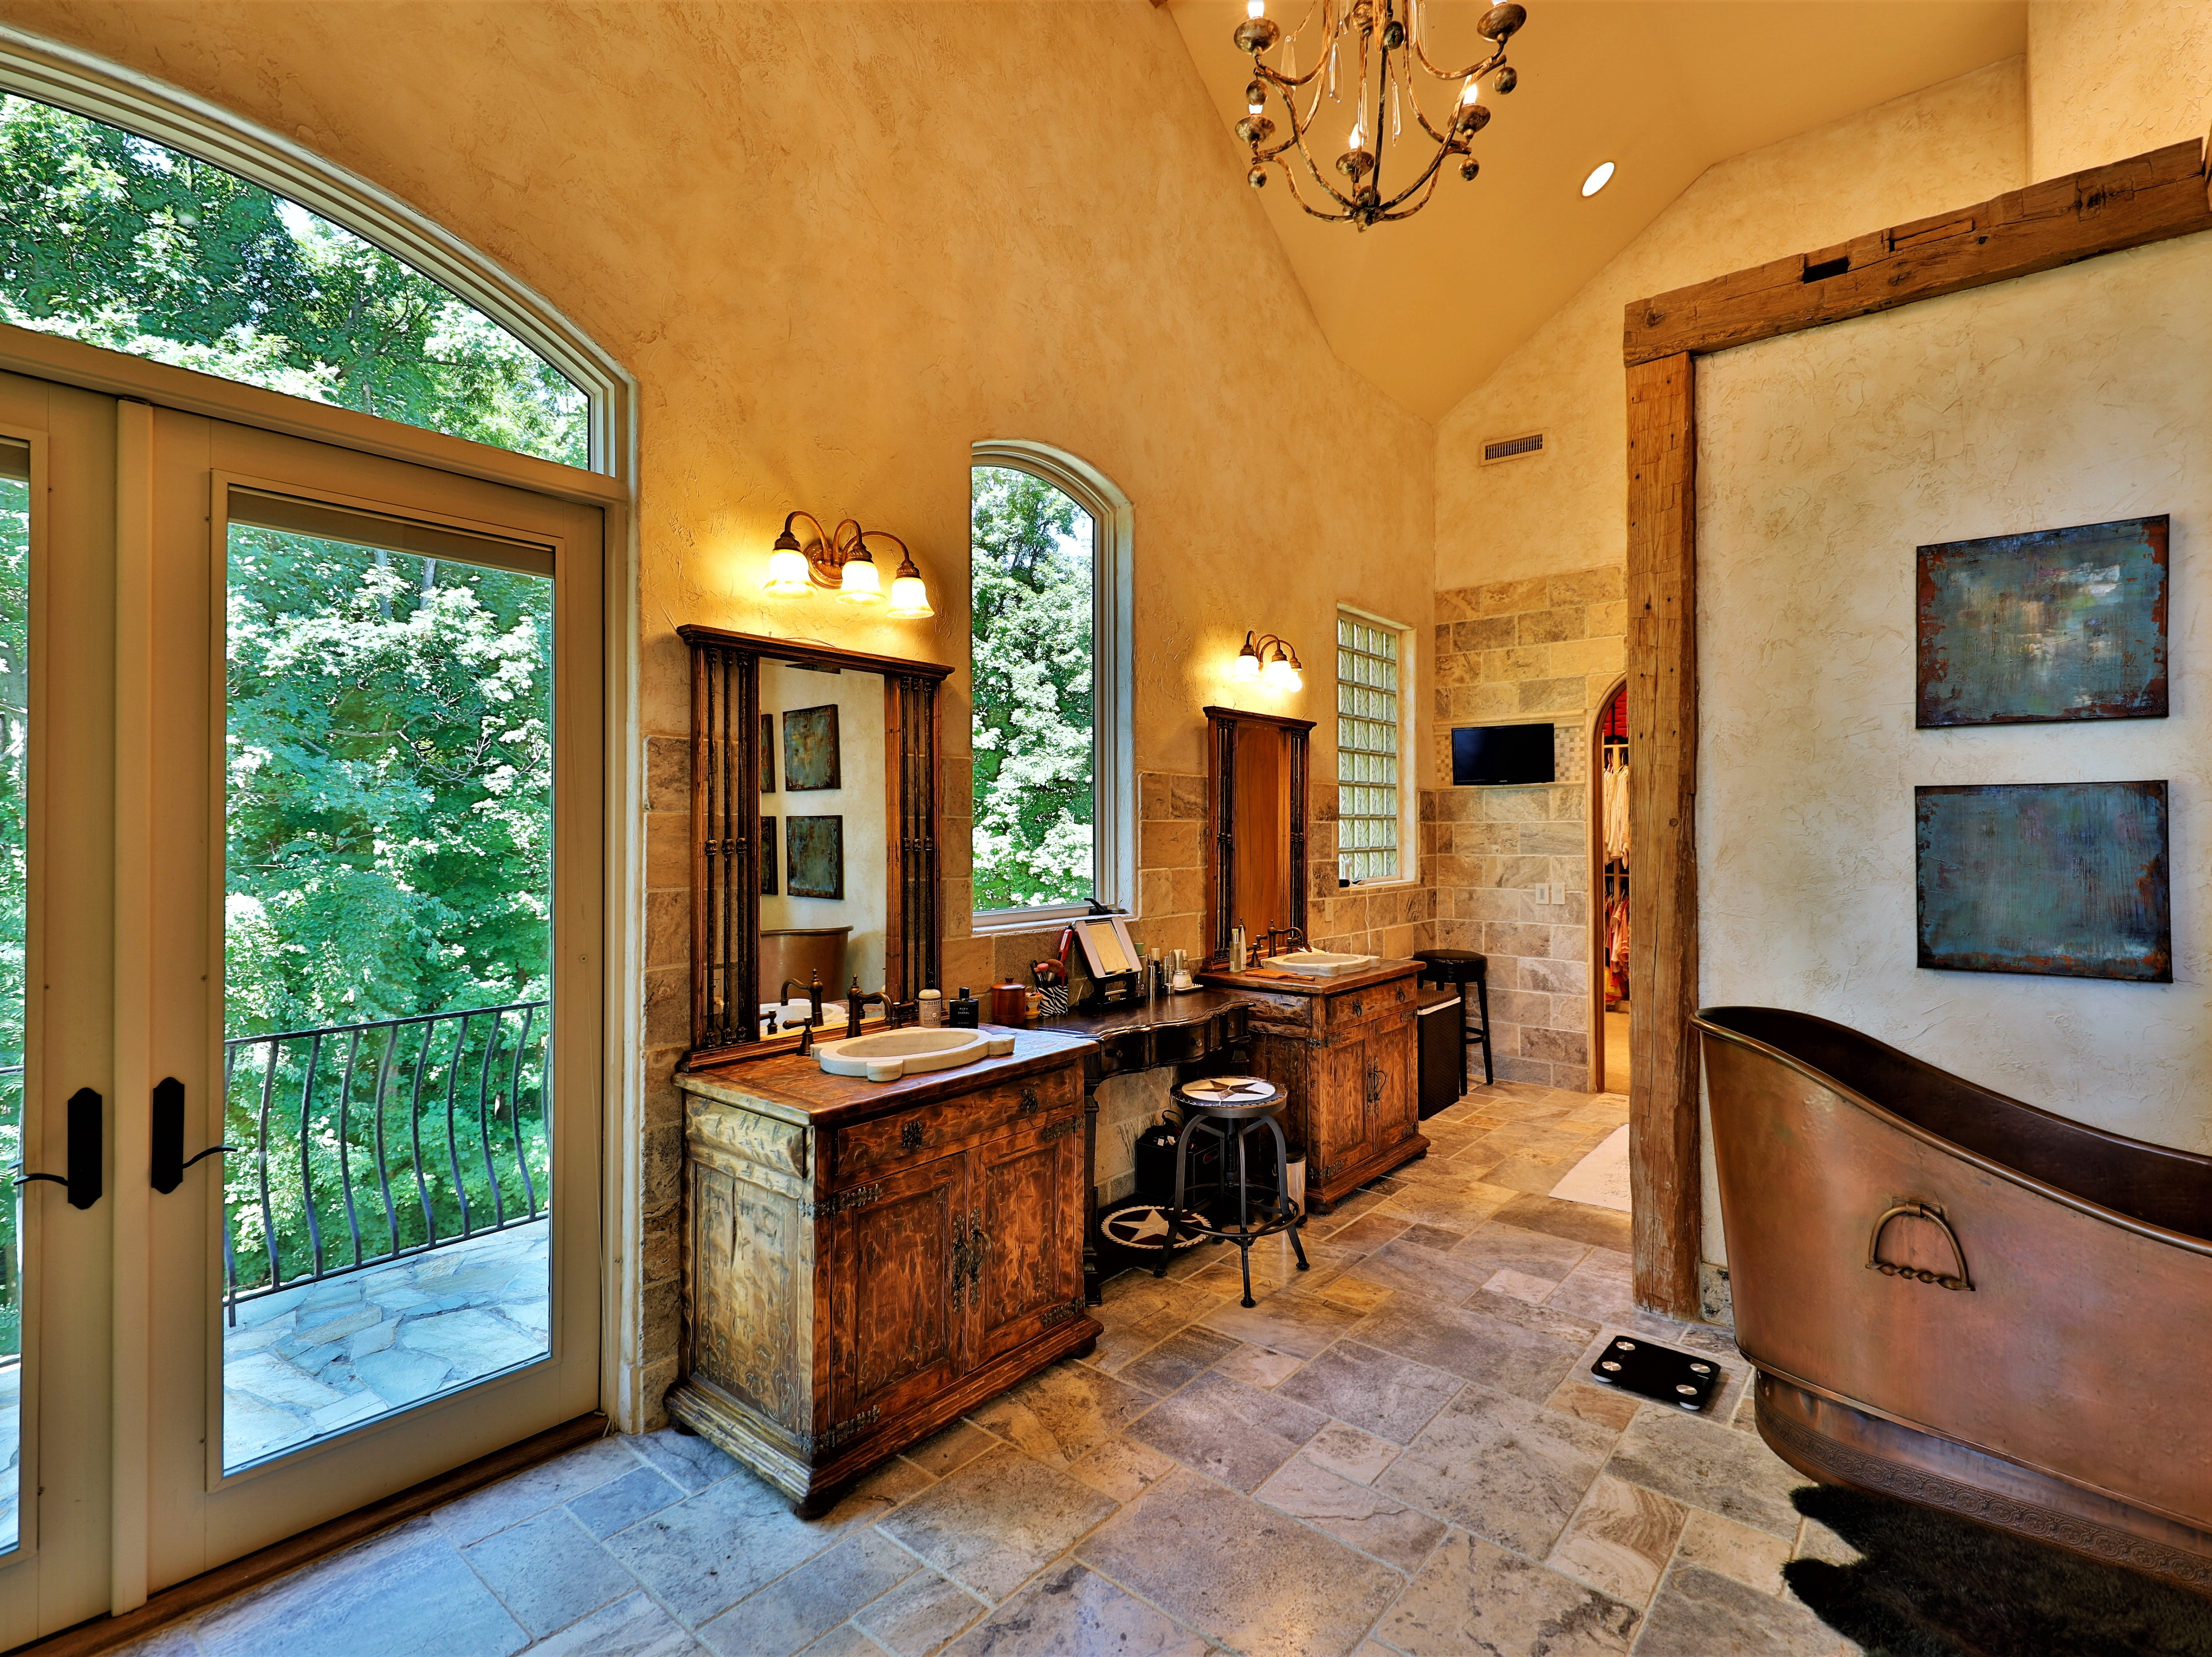 The master bathroom includes a freestanding bathtub and his-and-hers walk-in closets.